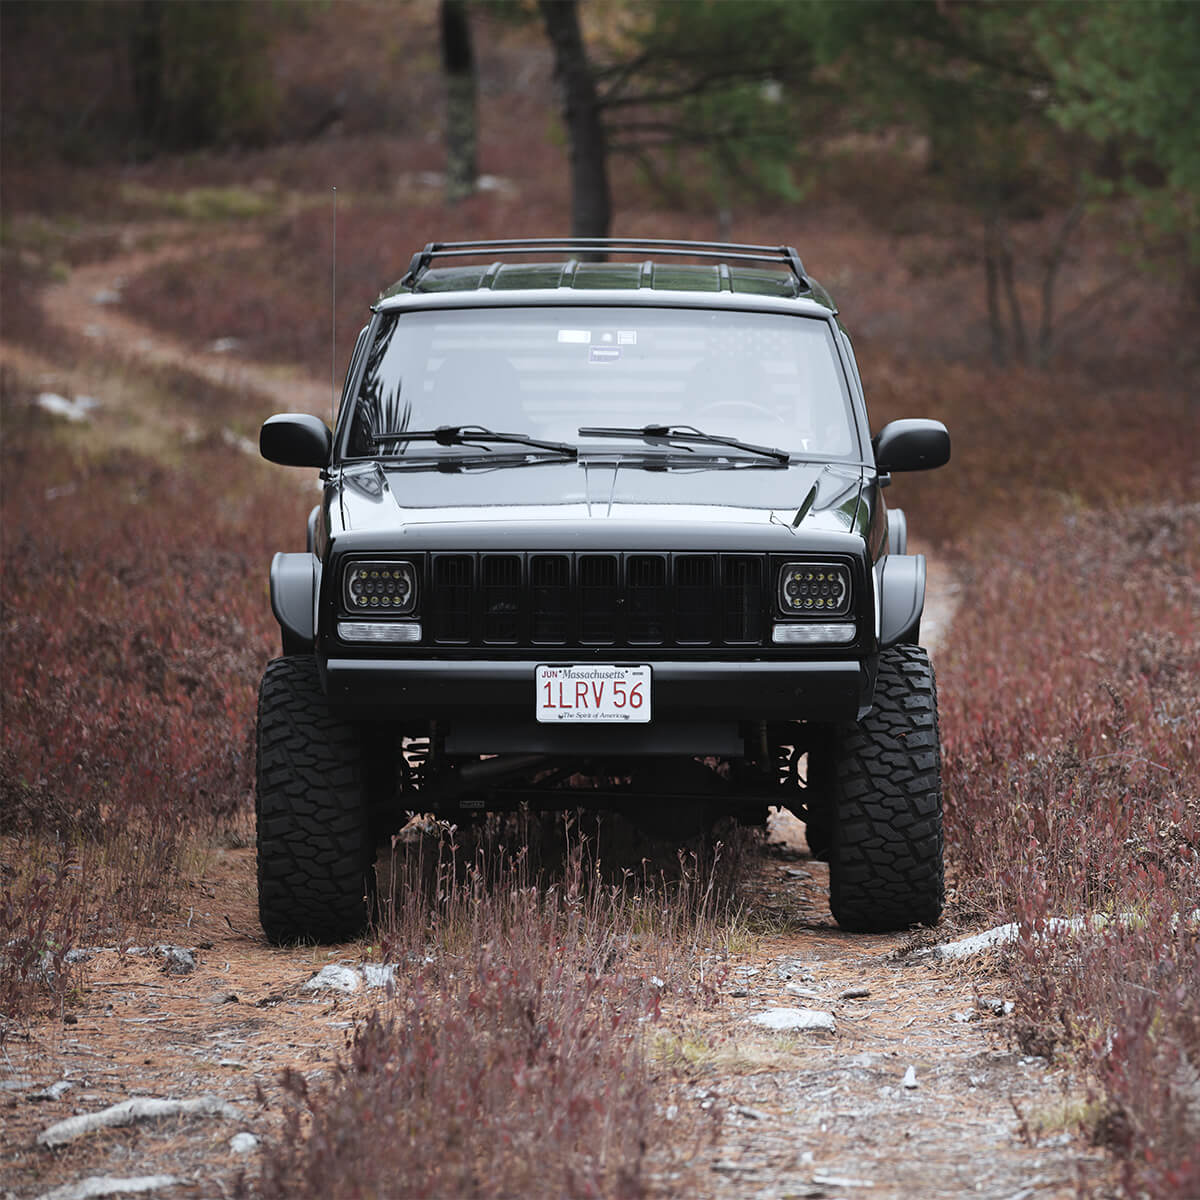 Badass lifted Jeep Cherokee XJ on 33 inch tires